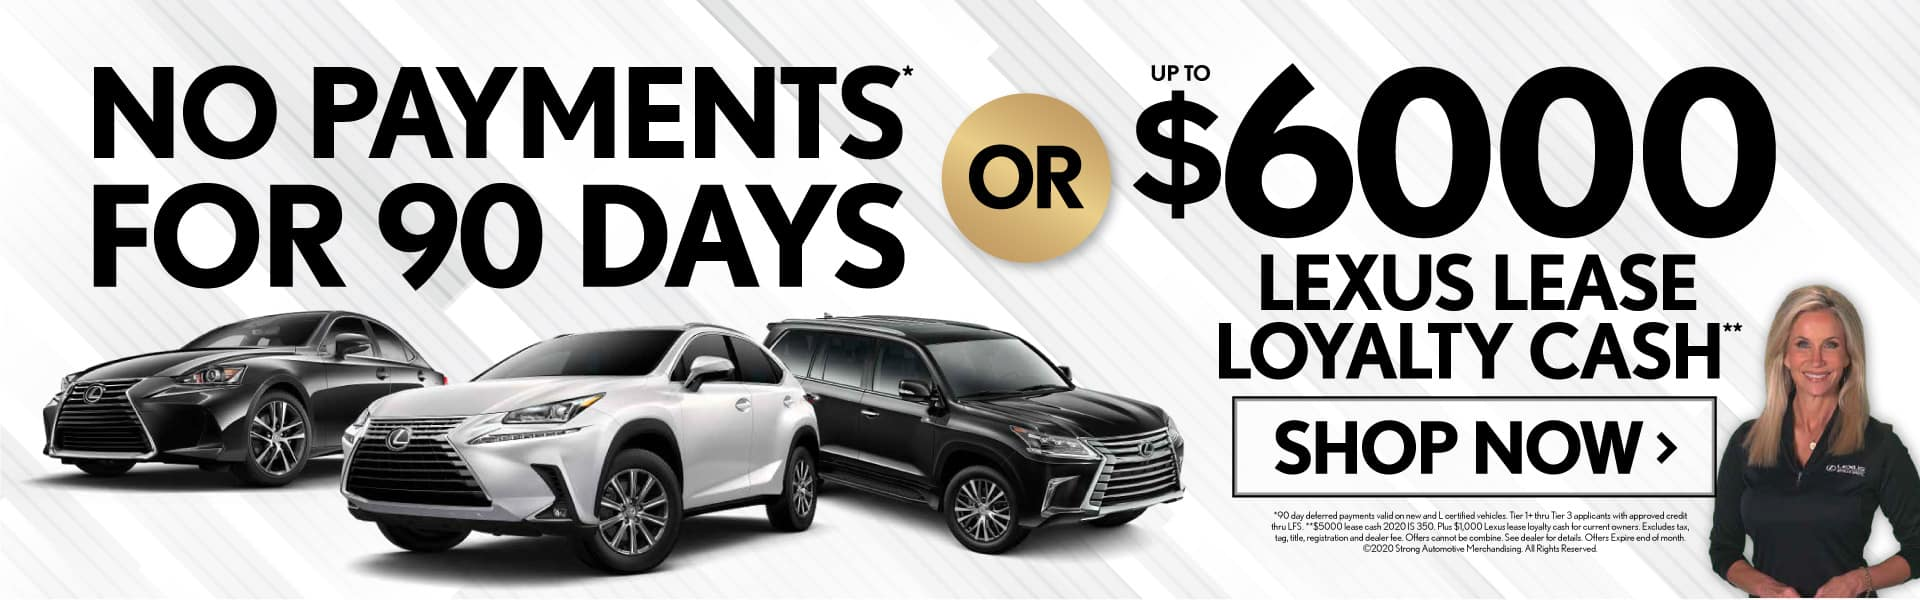 Just Announced: No Payments for 90 Days• or up to $6000 Lexus Lease Loyalty Cash**